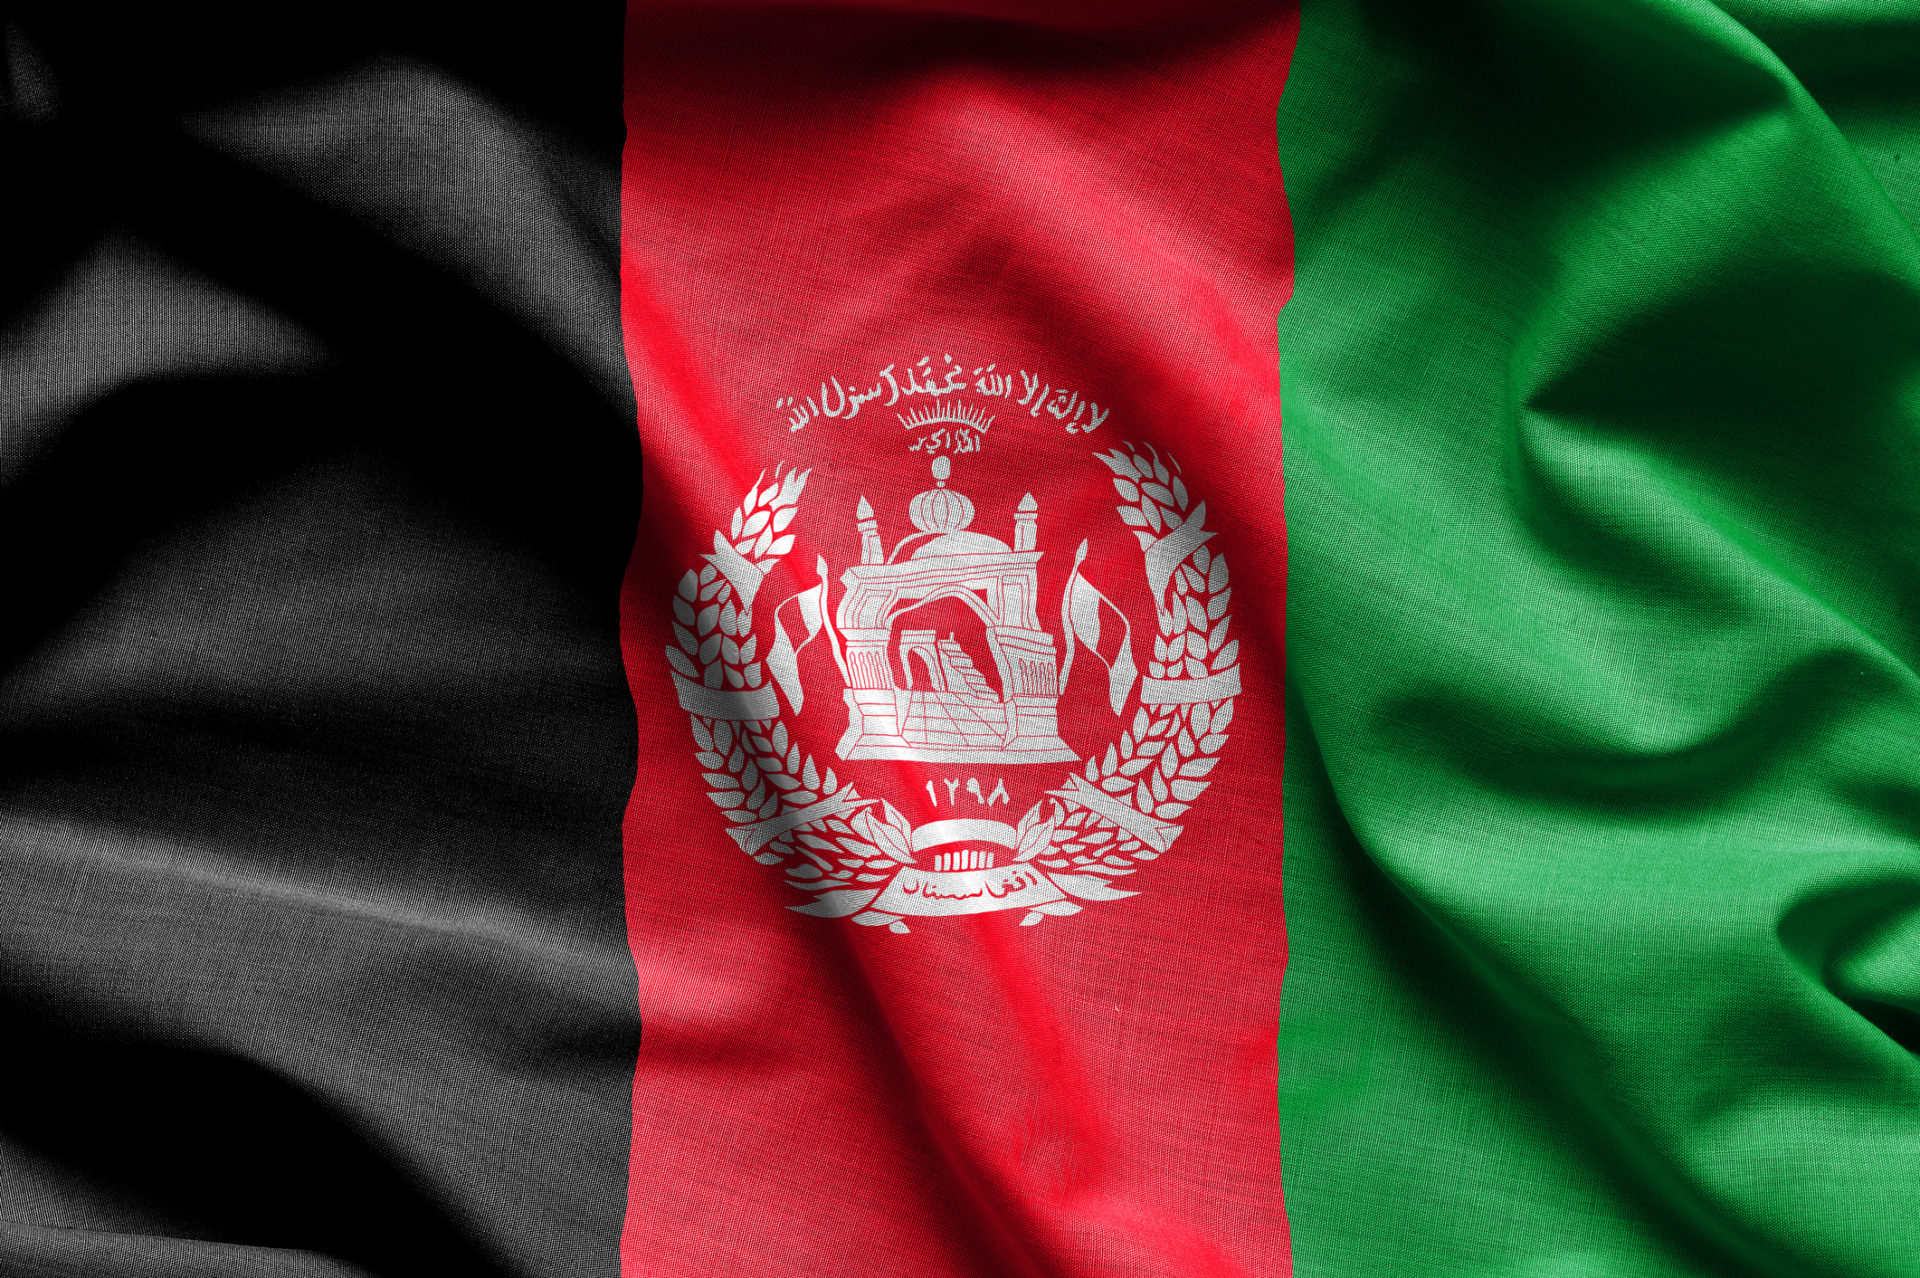 The collapse of the Afghan government has created a humanitarian crisis for the people Afghanistan, espeically women.